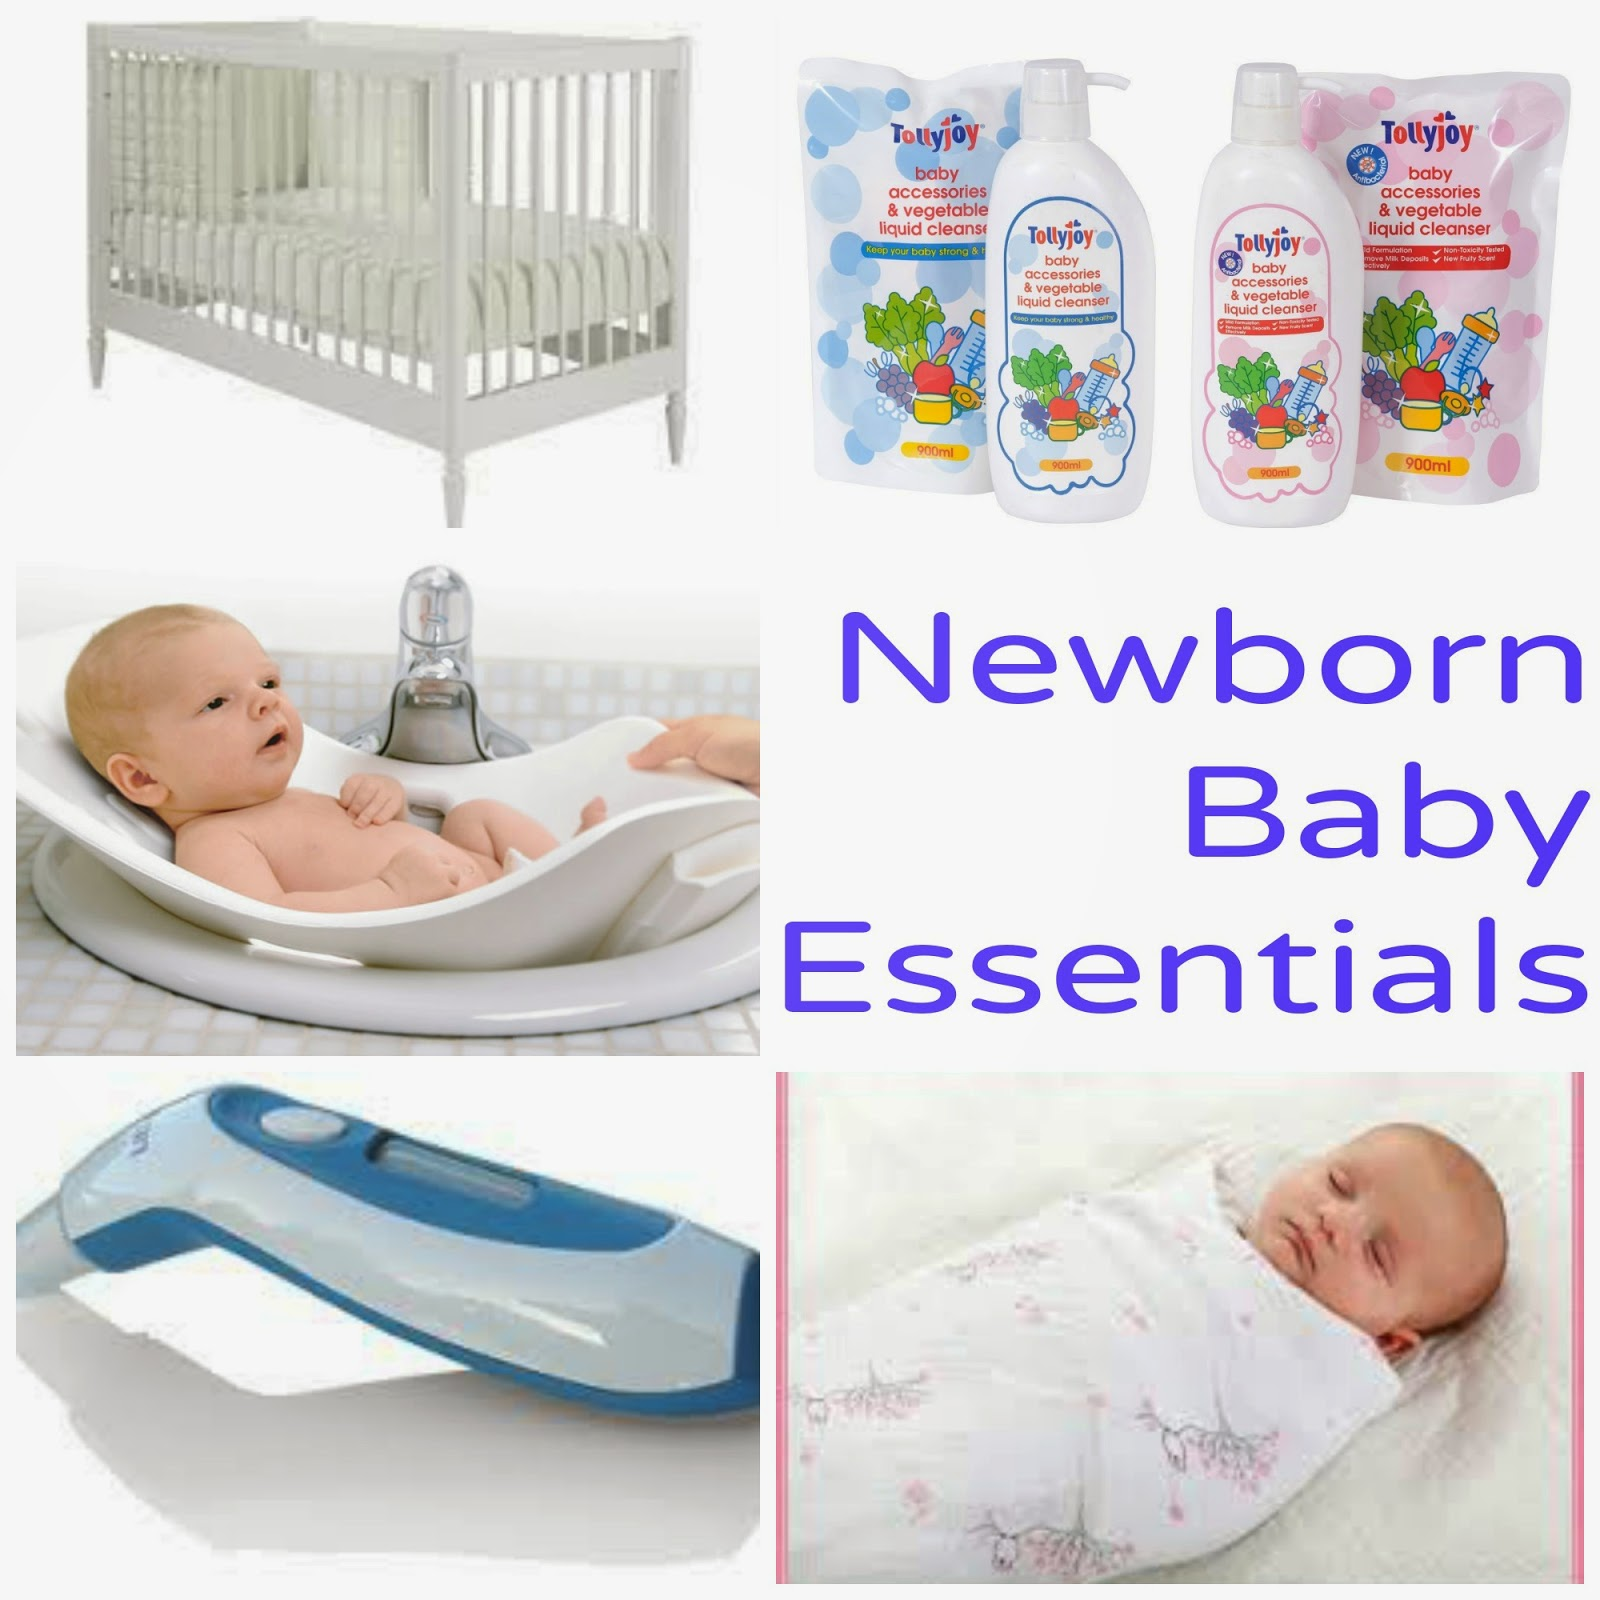 There are some other baby essentials lists out there, but after reading them, I came to the conclusion that most of them have a lot of stuff that you don't really need. I thought it would be a good idea to create a list of baby essentials along with items that are really nice to have, but not exactly vital.